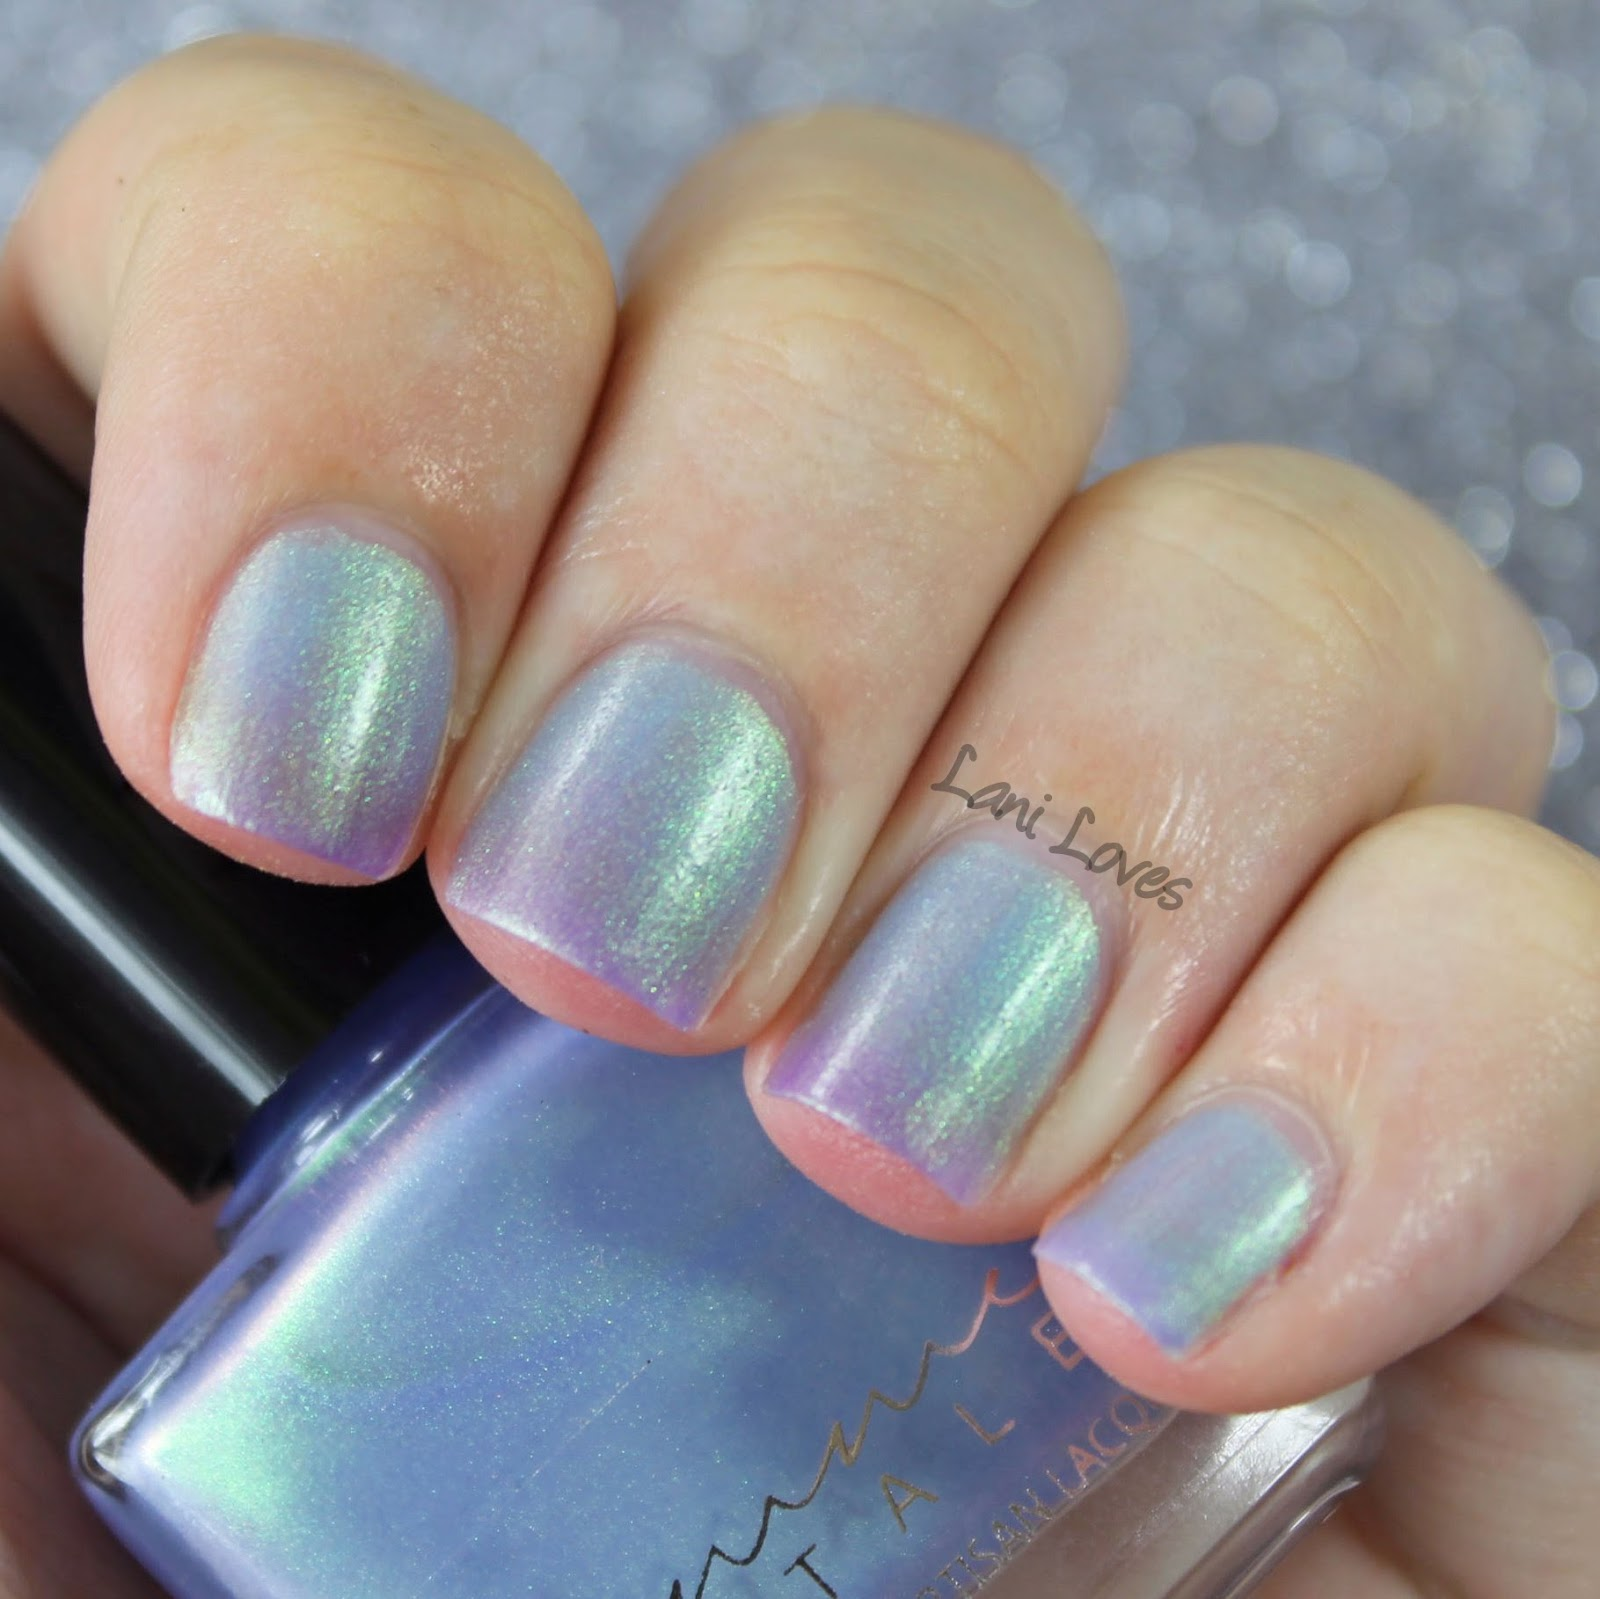 Femme Fatale Cosmetics - Glass Coffin nail polish swatches & review